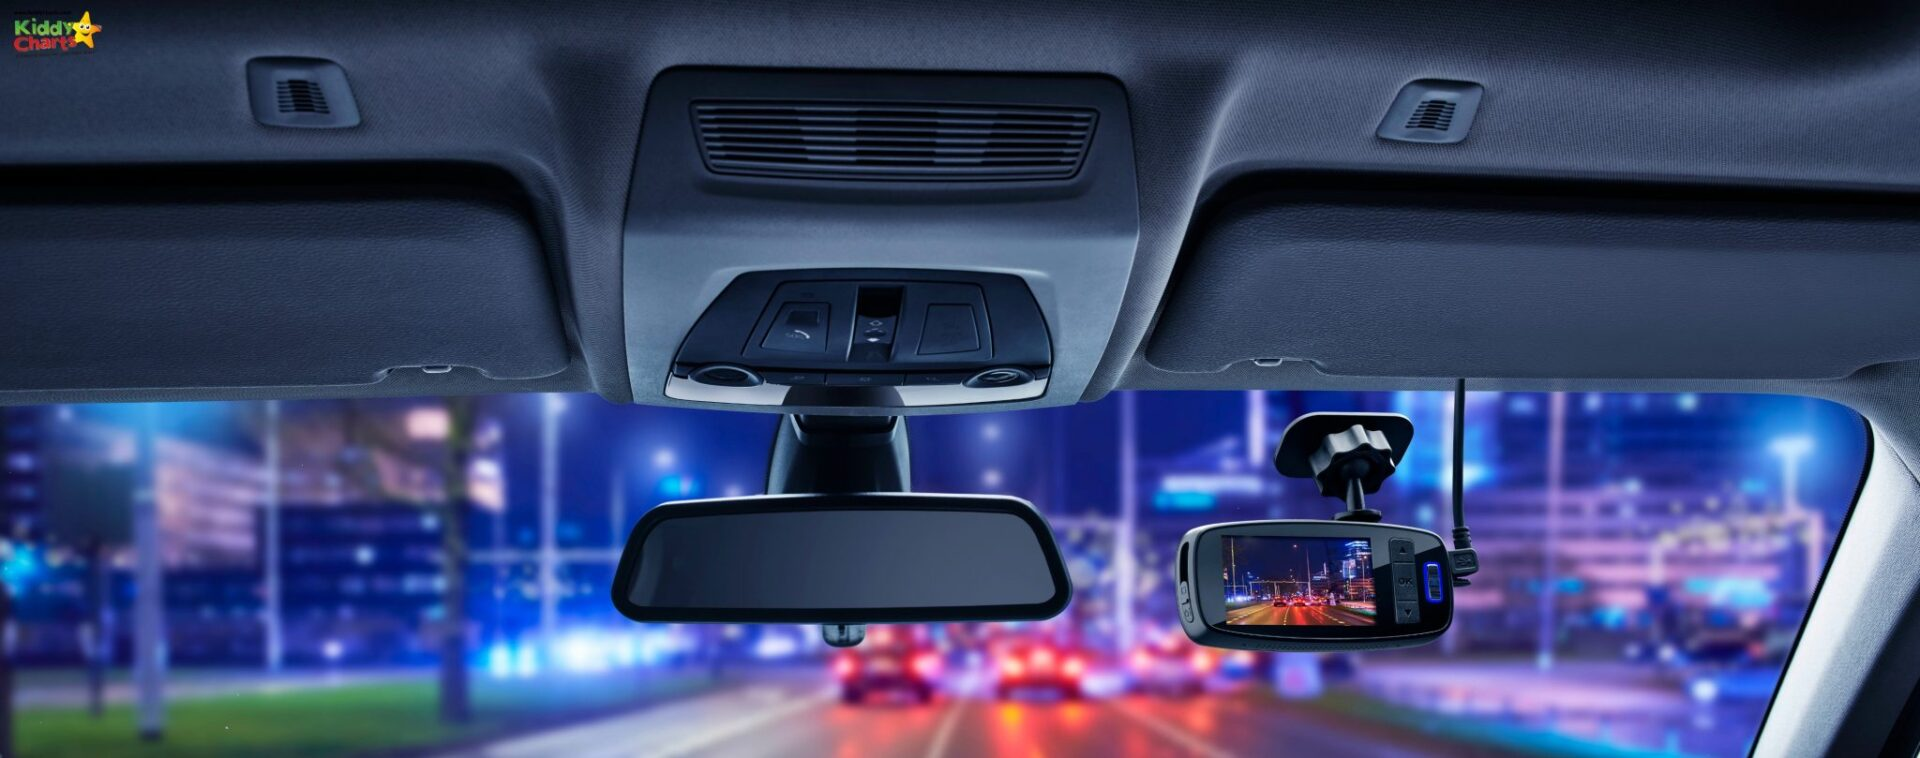 The Phiips Dash Cam looks stylish.